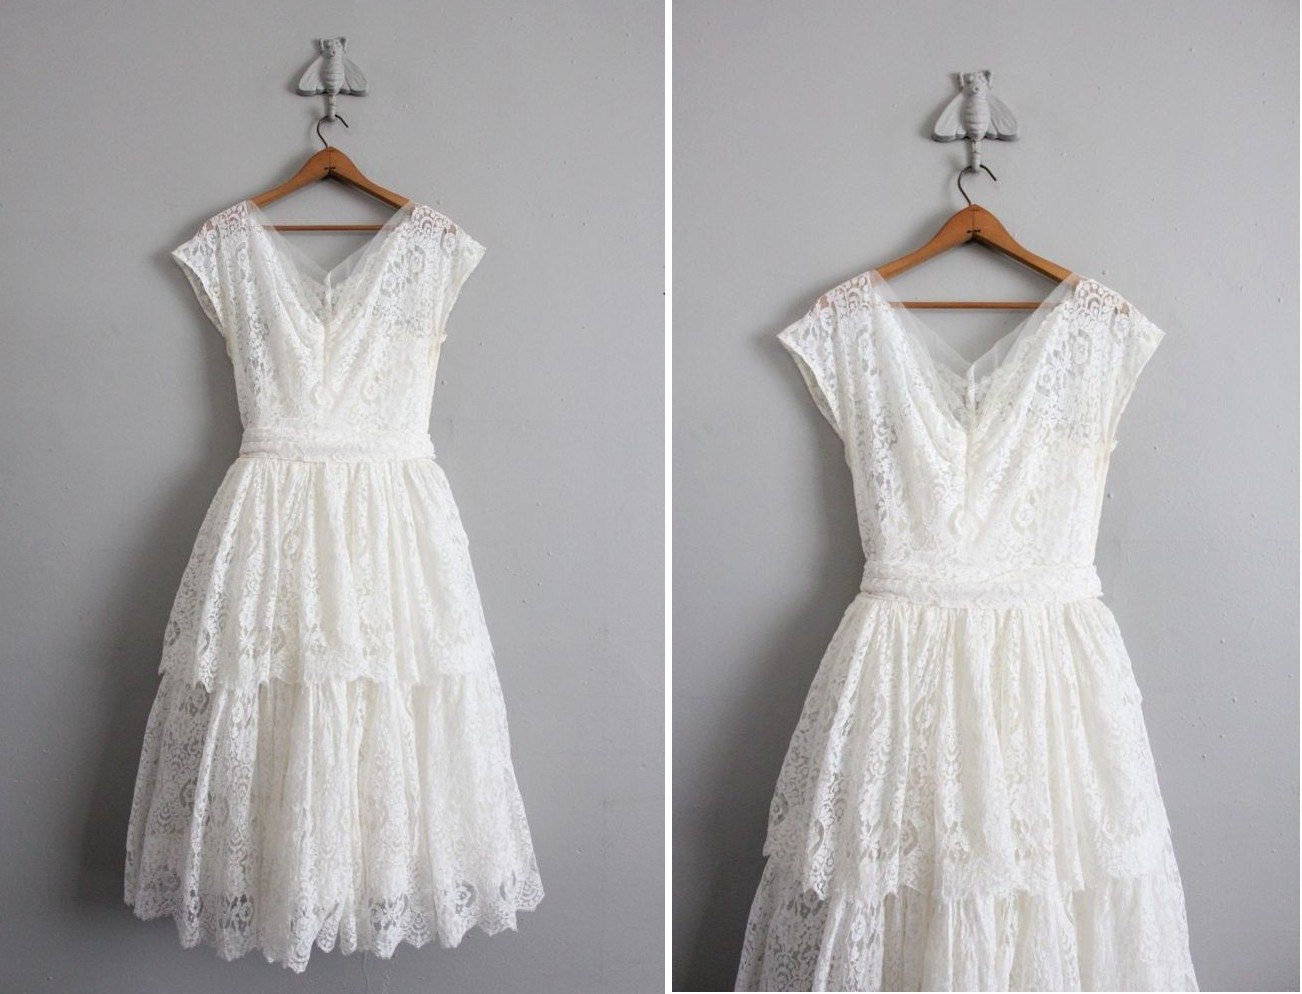 1950s vintage white lace wedding dress